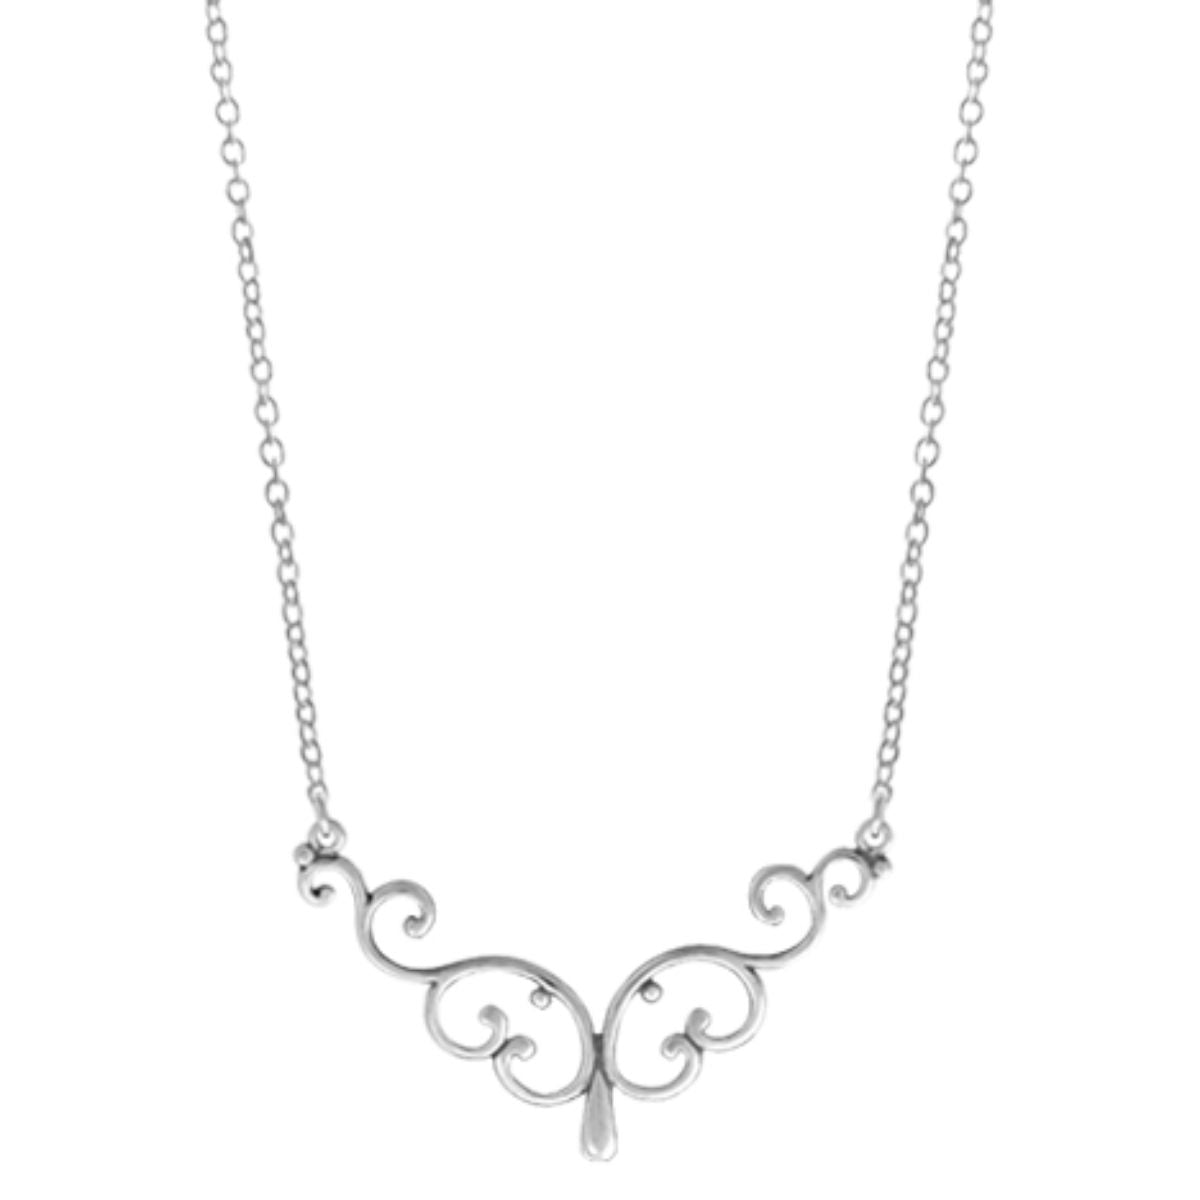 BO NA2270 FILIGREE BAR NECKLACE